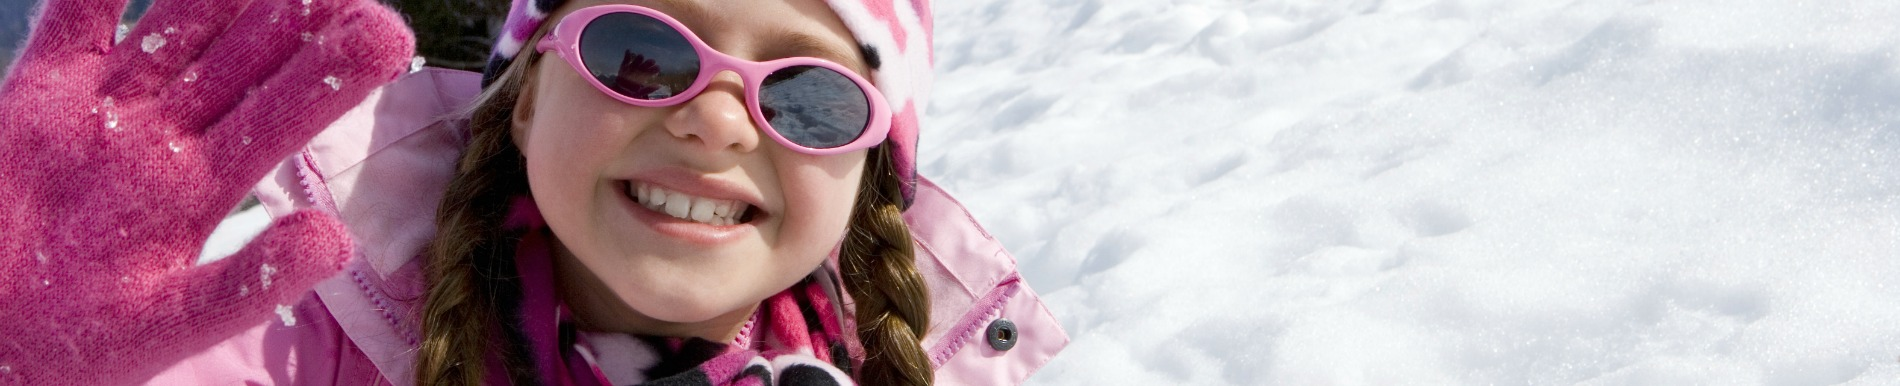 https://www.healthychildren.org/SiteCollectionImage-Homepage-Banners/SunglassesWinter_Banner.jpg